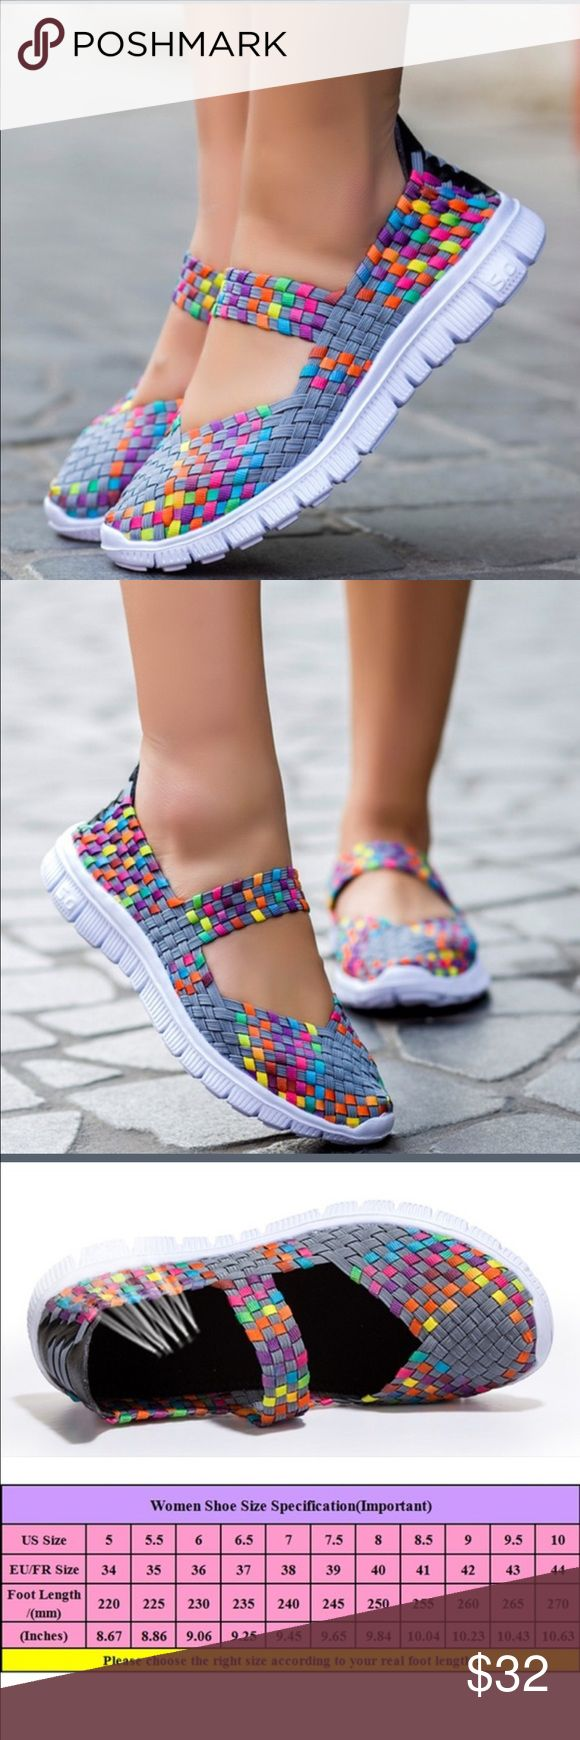 BREATHABLE SNEAKER Just an all around comfortable shoe! Cute and colorful!!! Mesh!!!! Great for everyday... Feels like your wearing next to nothing!!! Very Light...Brand New Shoes Athletic Shoes